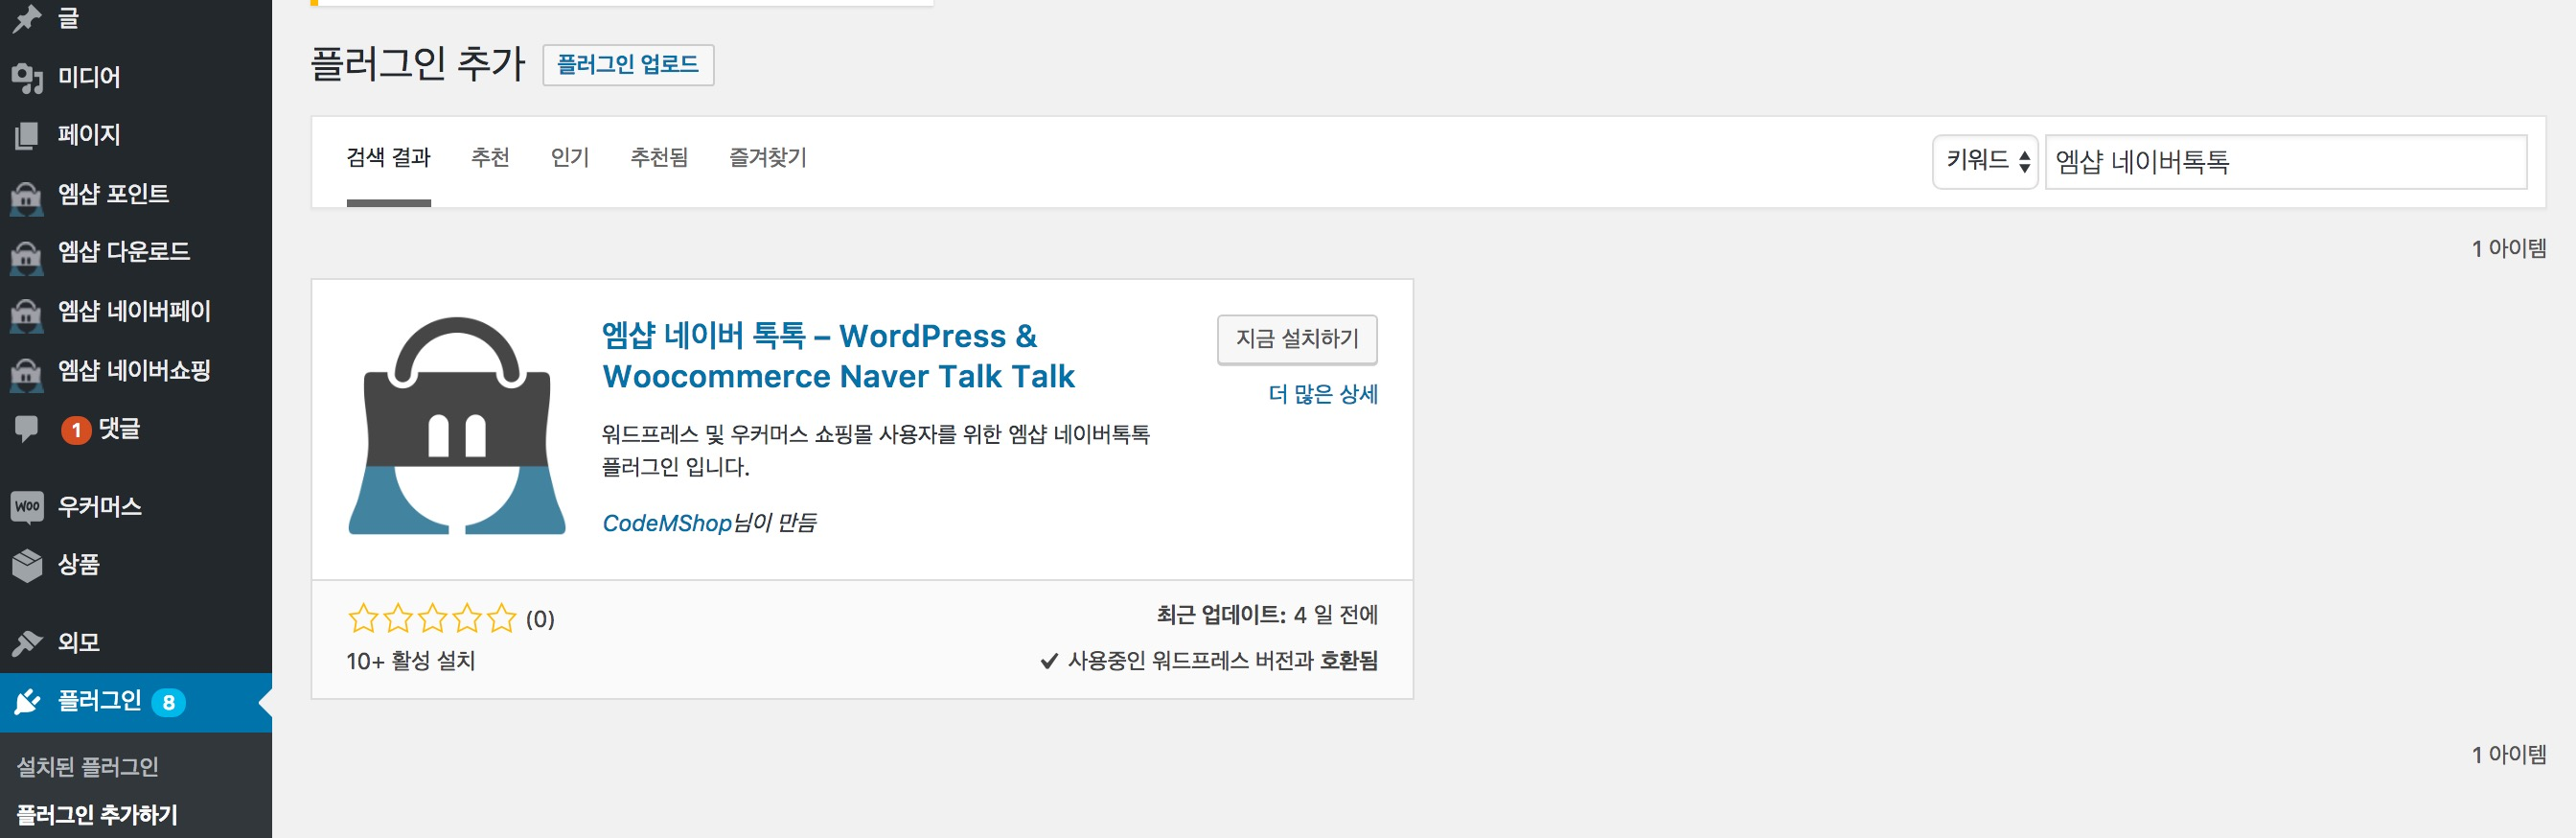 wordpress-live-chat-naver-talktalk-codemshop-6